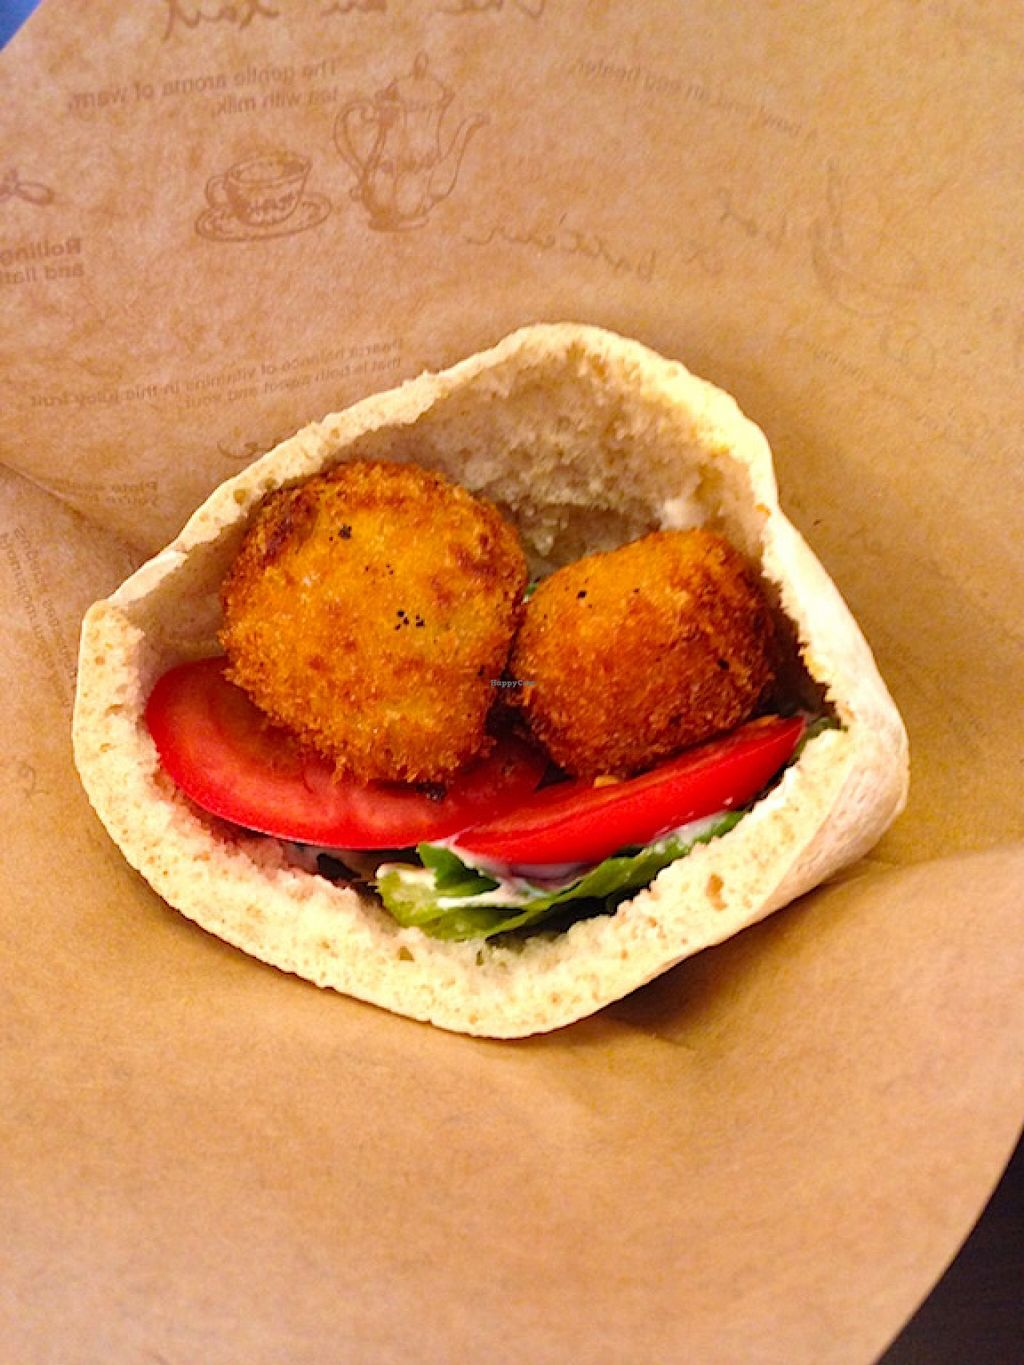 "Photo of Veggie Cafe  by <a href=""/members/profile/jeedeecee"">jeedeecee</a> <br/>Close up of the falafel, soft and crispy.  <br/> August 29, 2015  - <a href='/contact/abuse/image/40954/115605'>Report</a>"